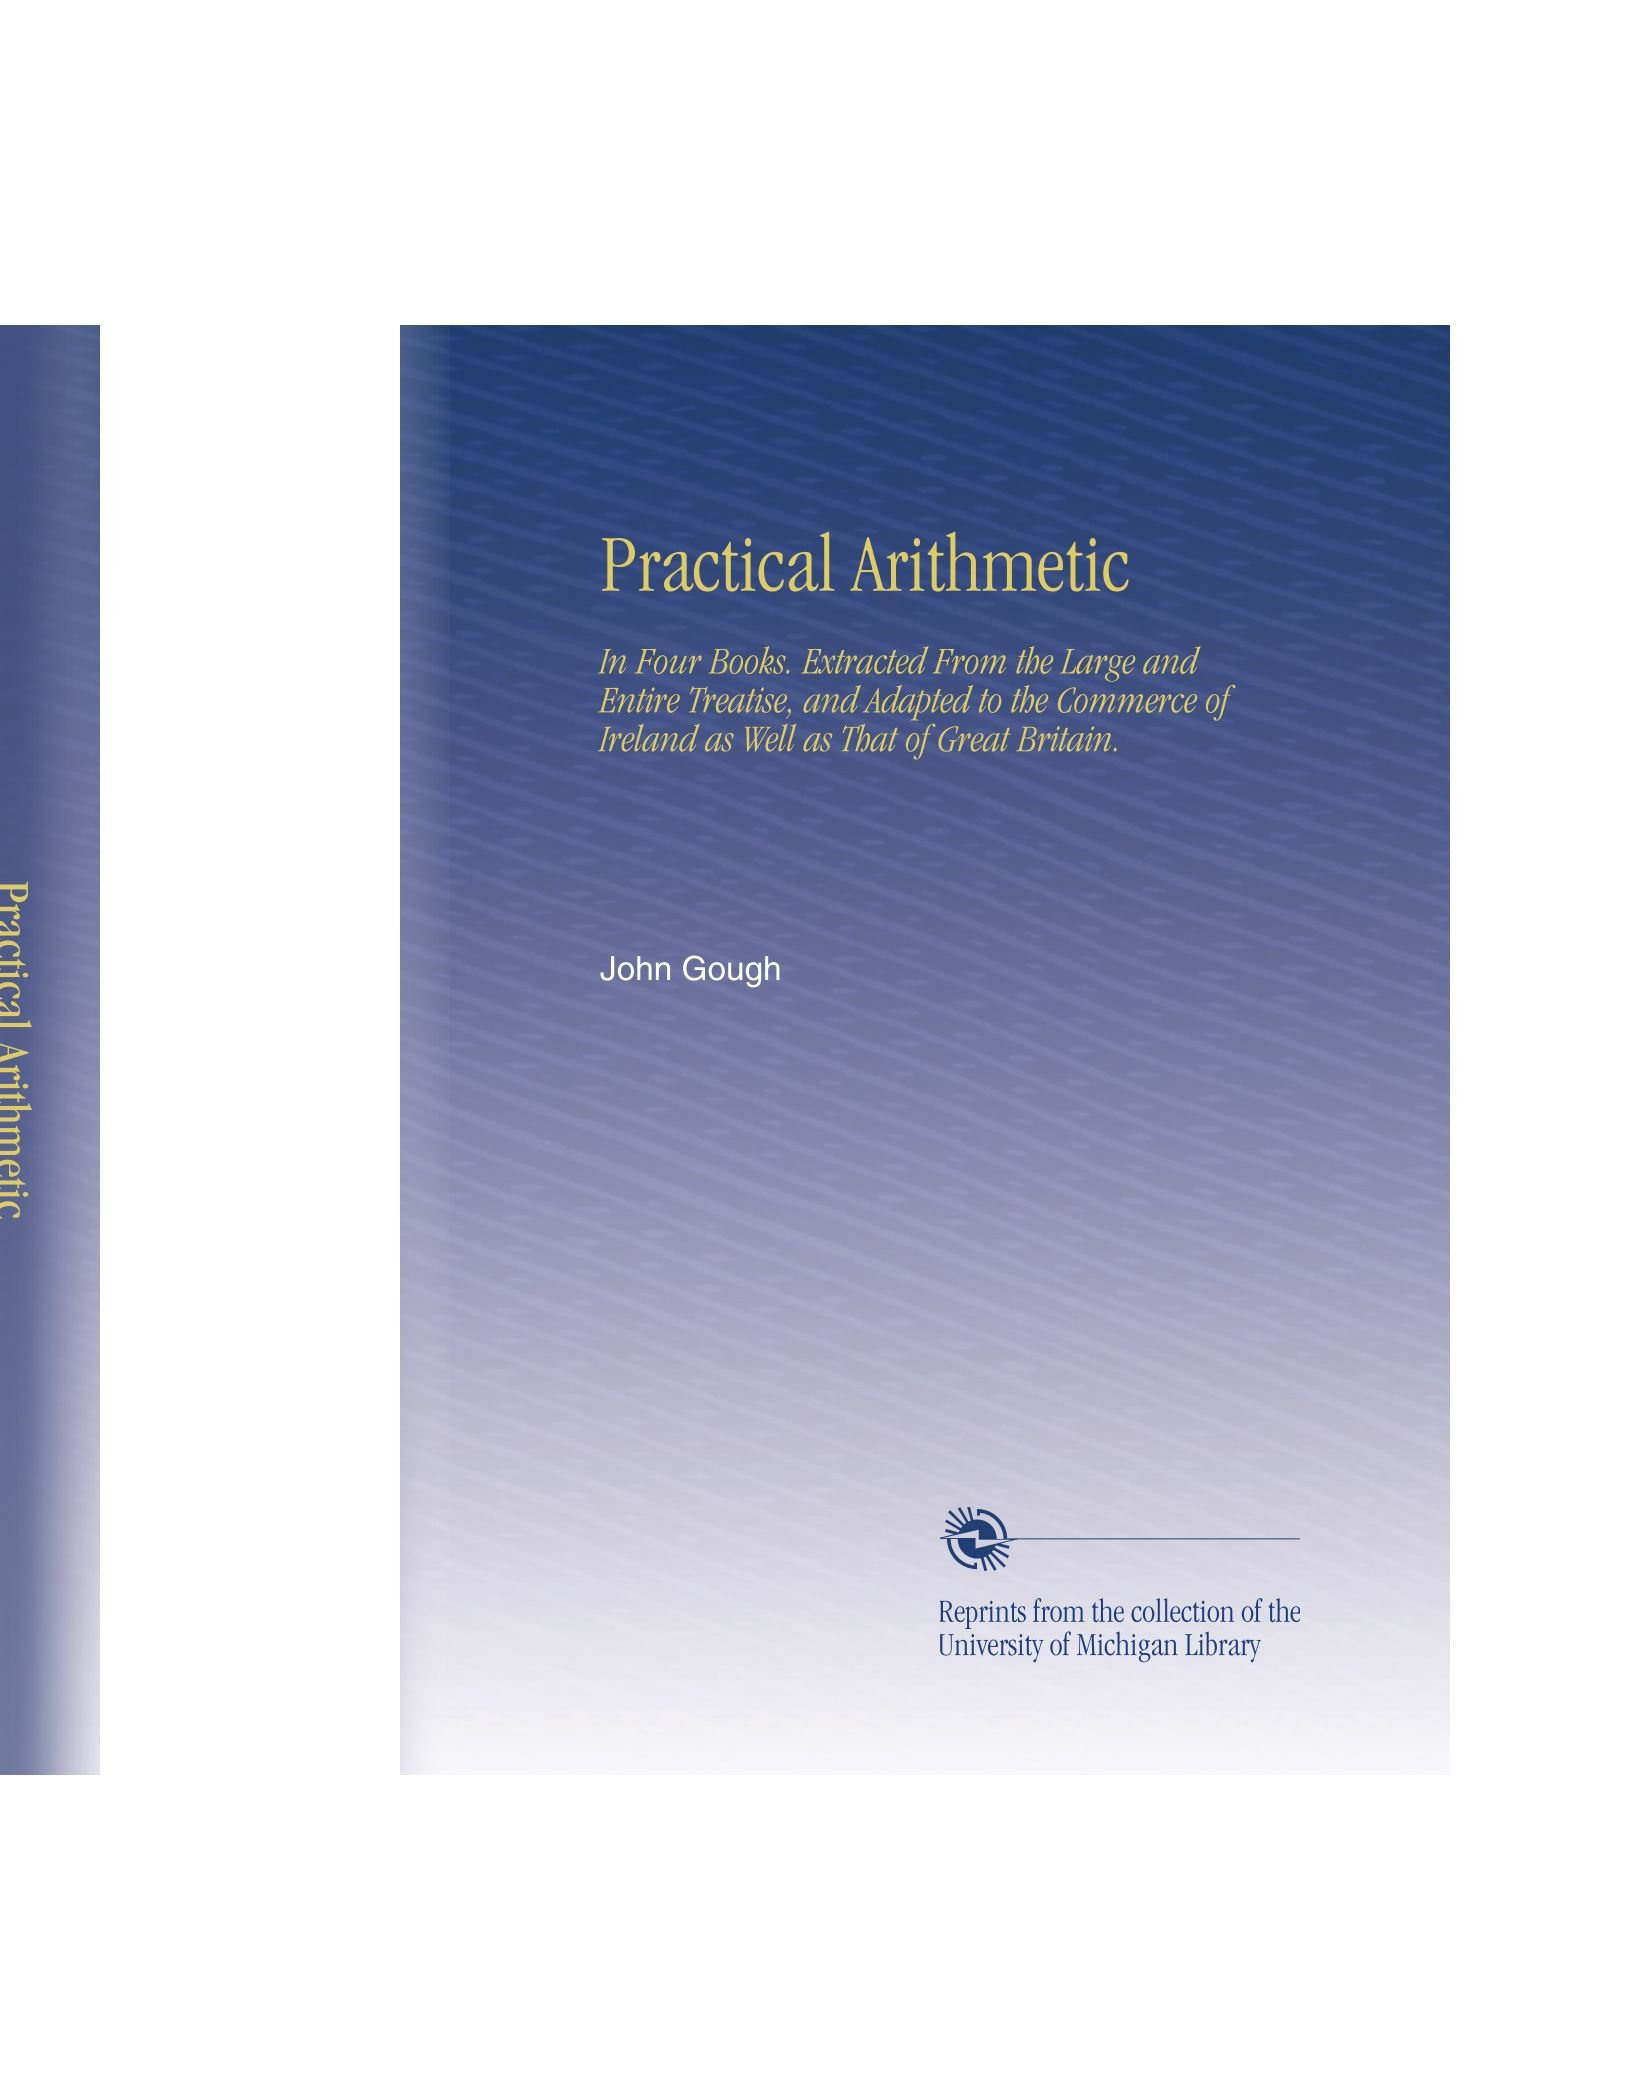 Practical Arithmetic: In Four Books. Extracted From the Large and Entire Treatise, and Adapted to the Commerce of Ireland as Well as That of Great Britain. pdf